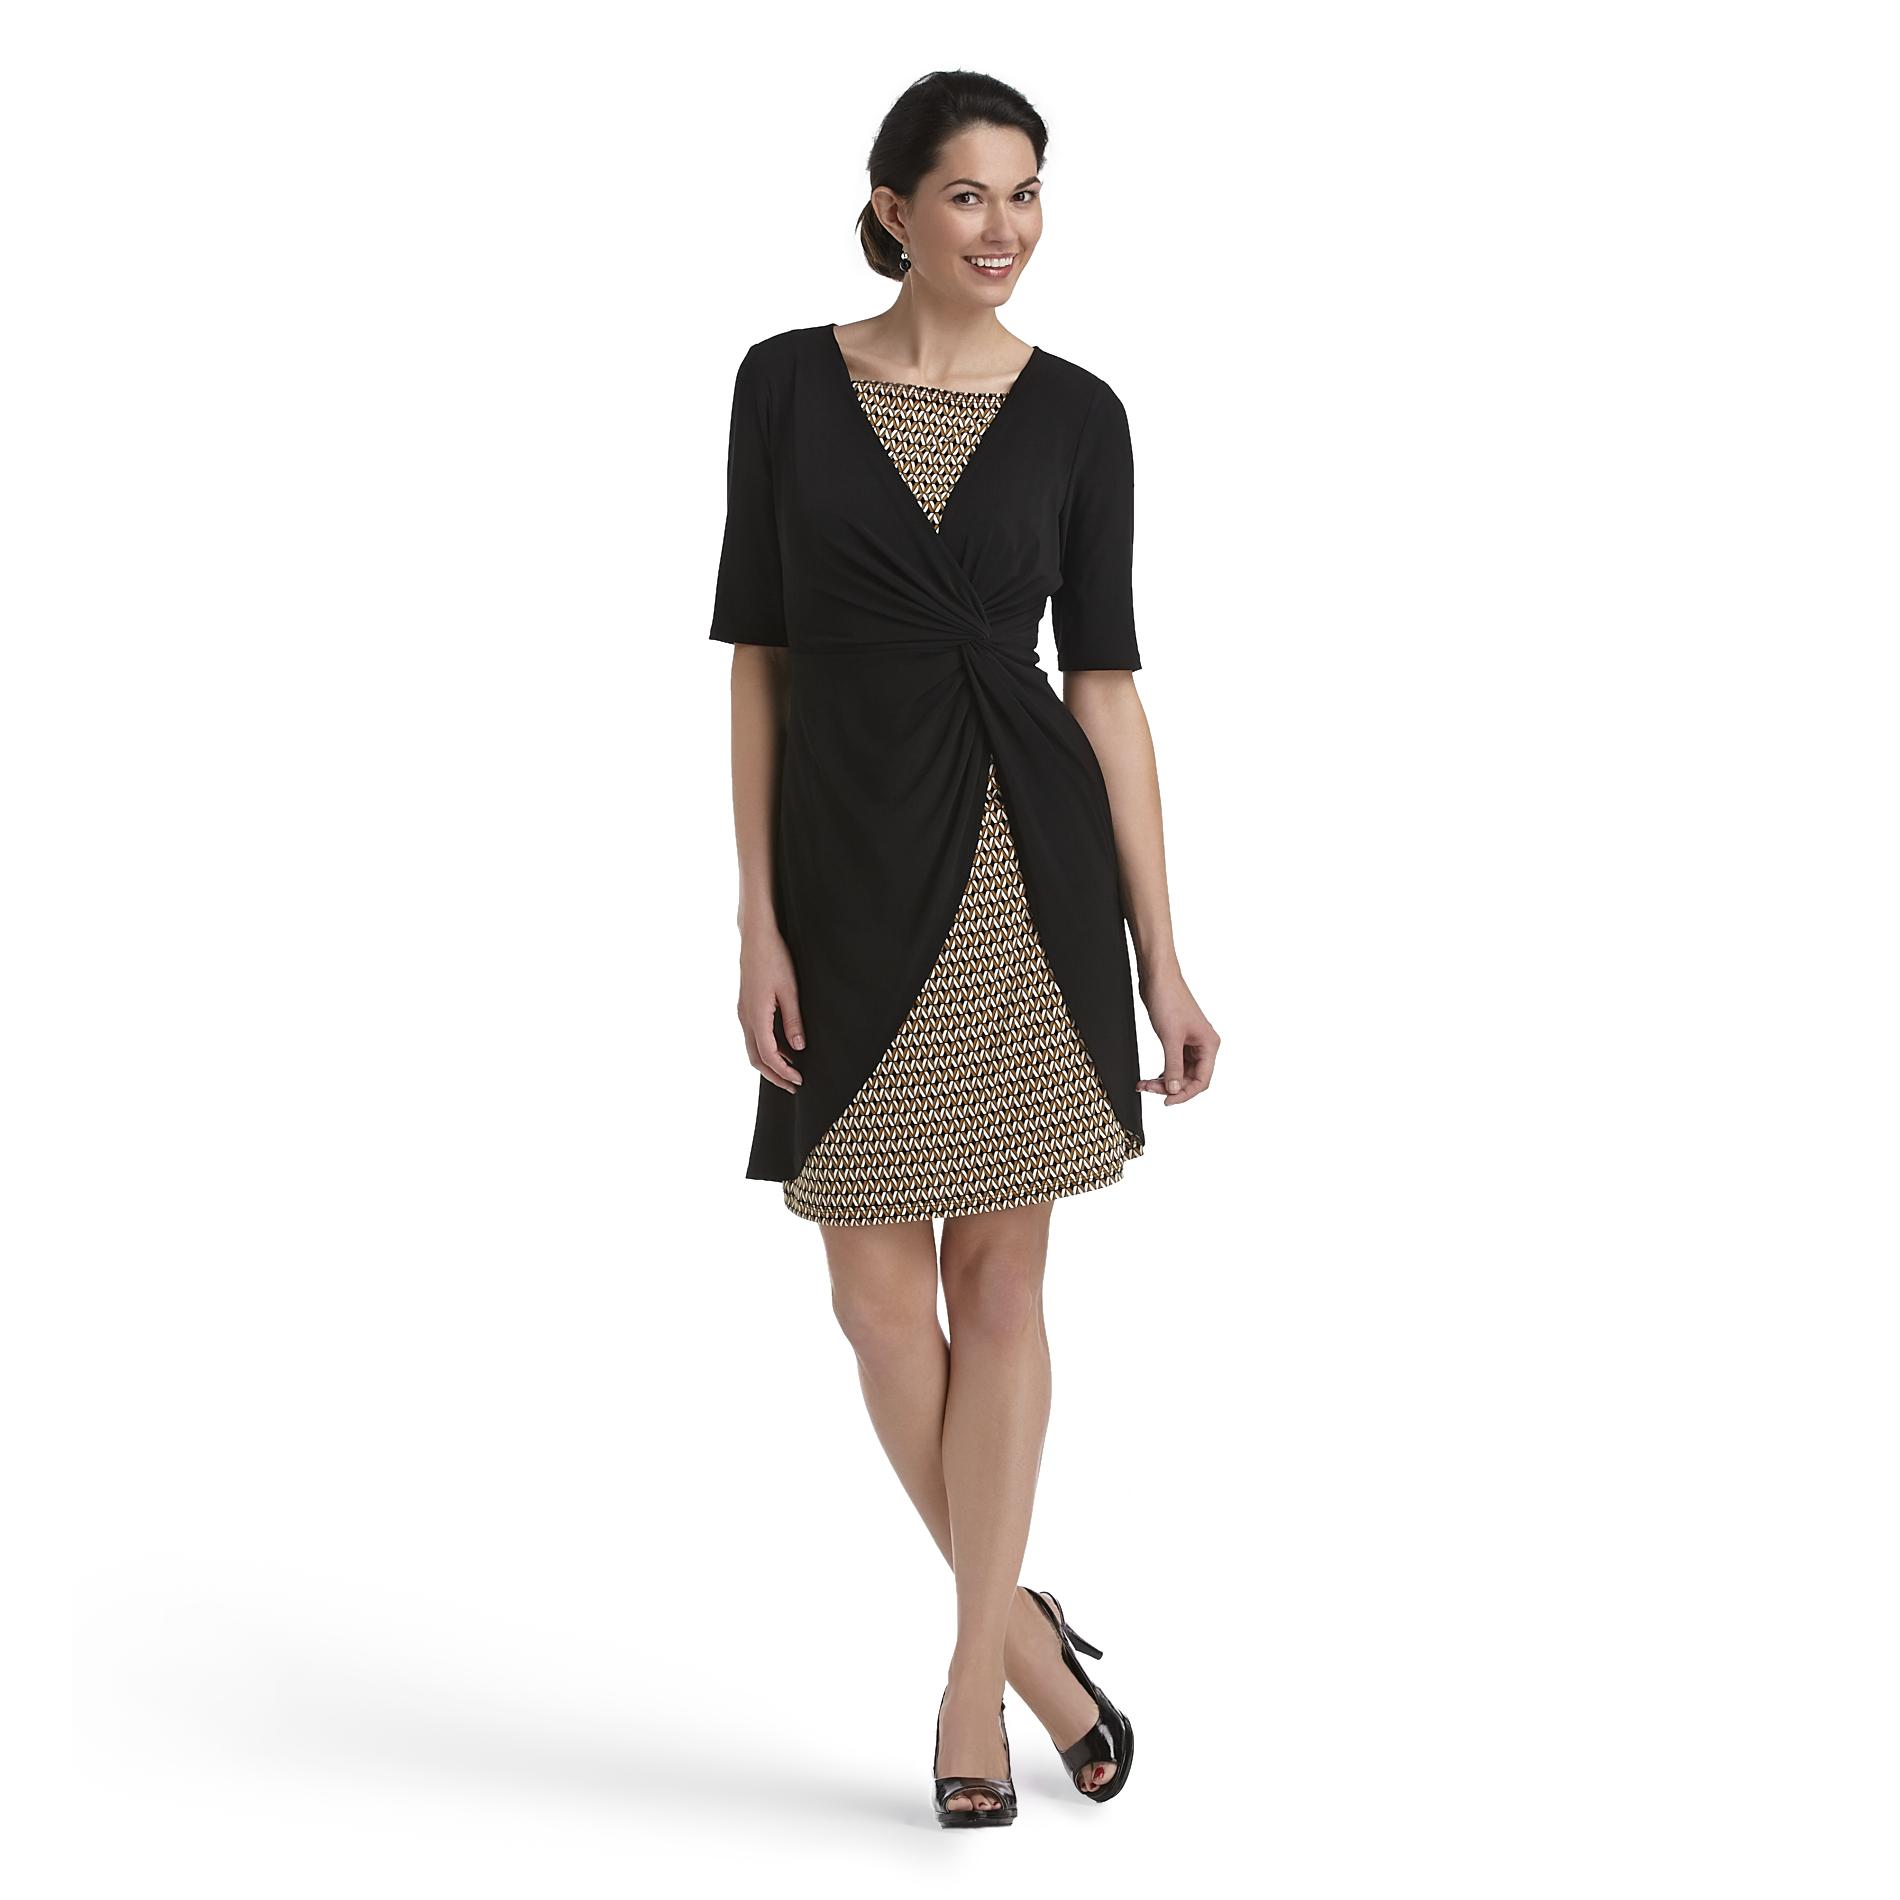 JBS Women's Knit Dress - Geometric at Sears.com